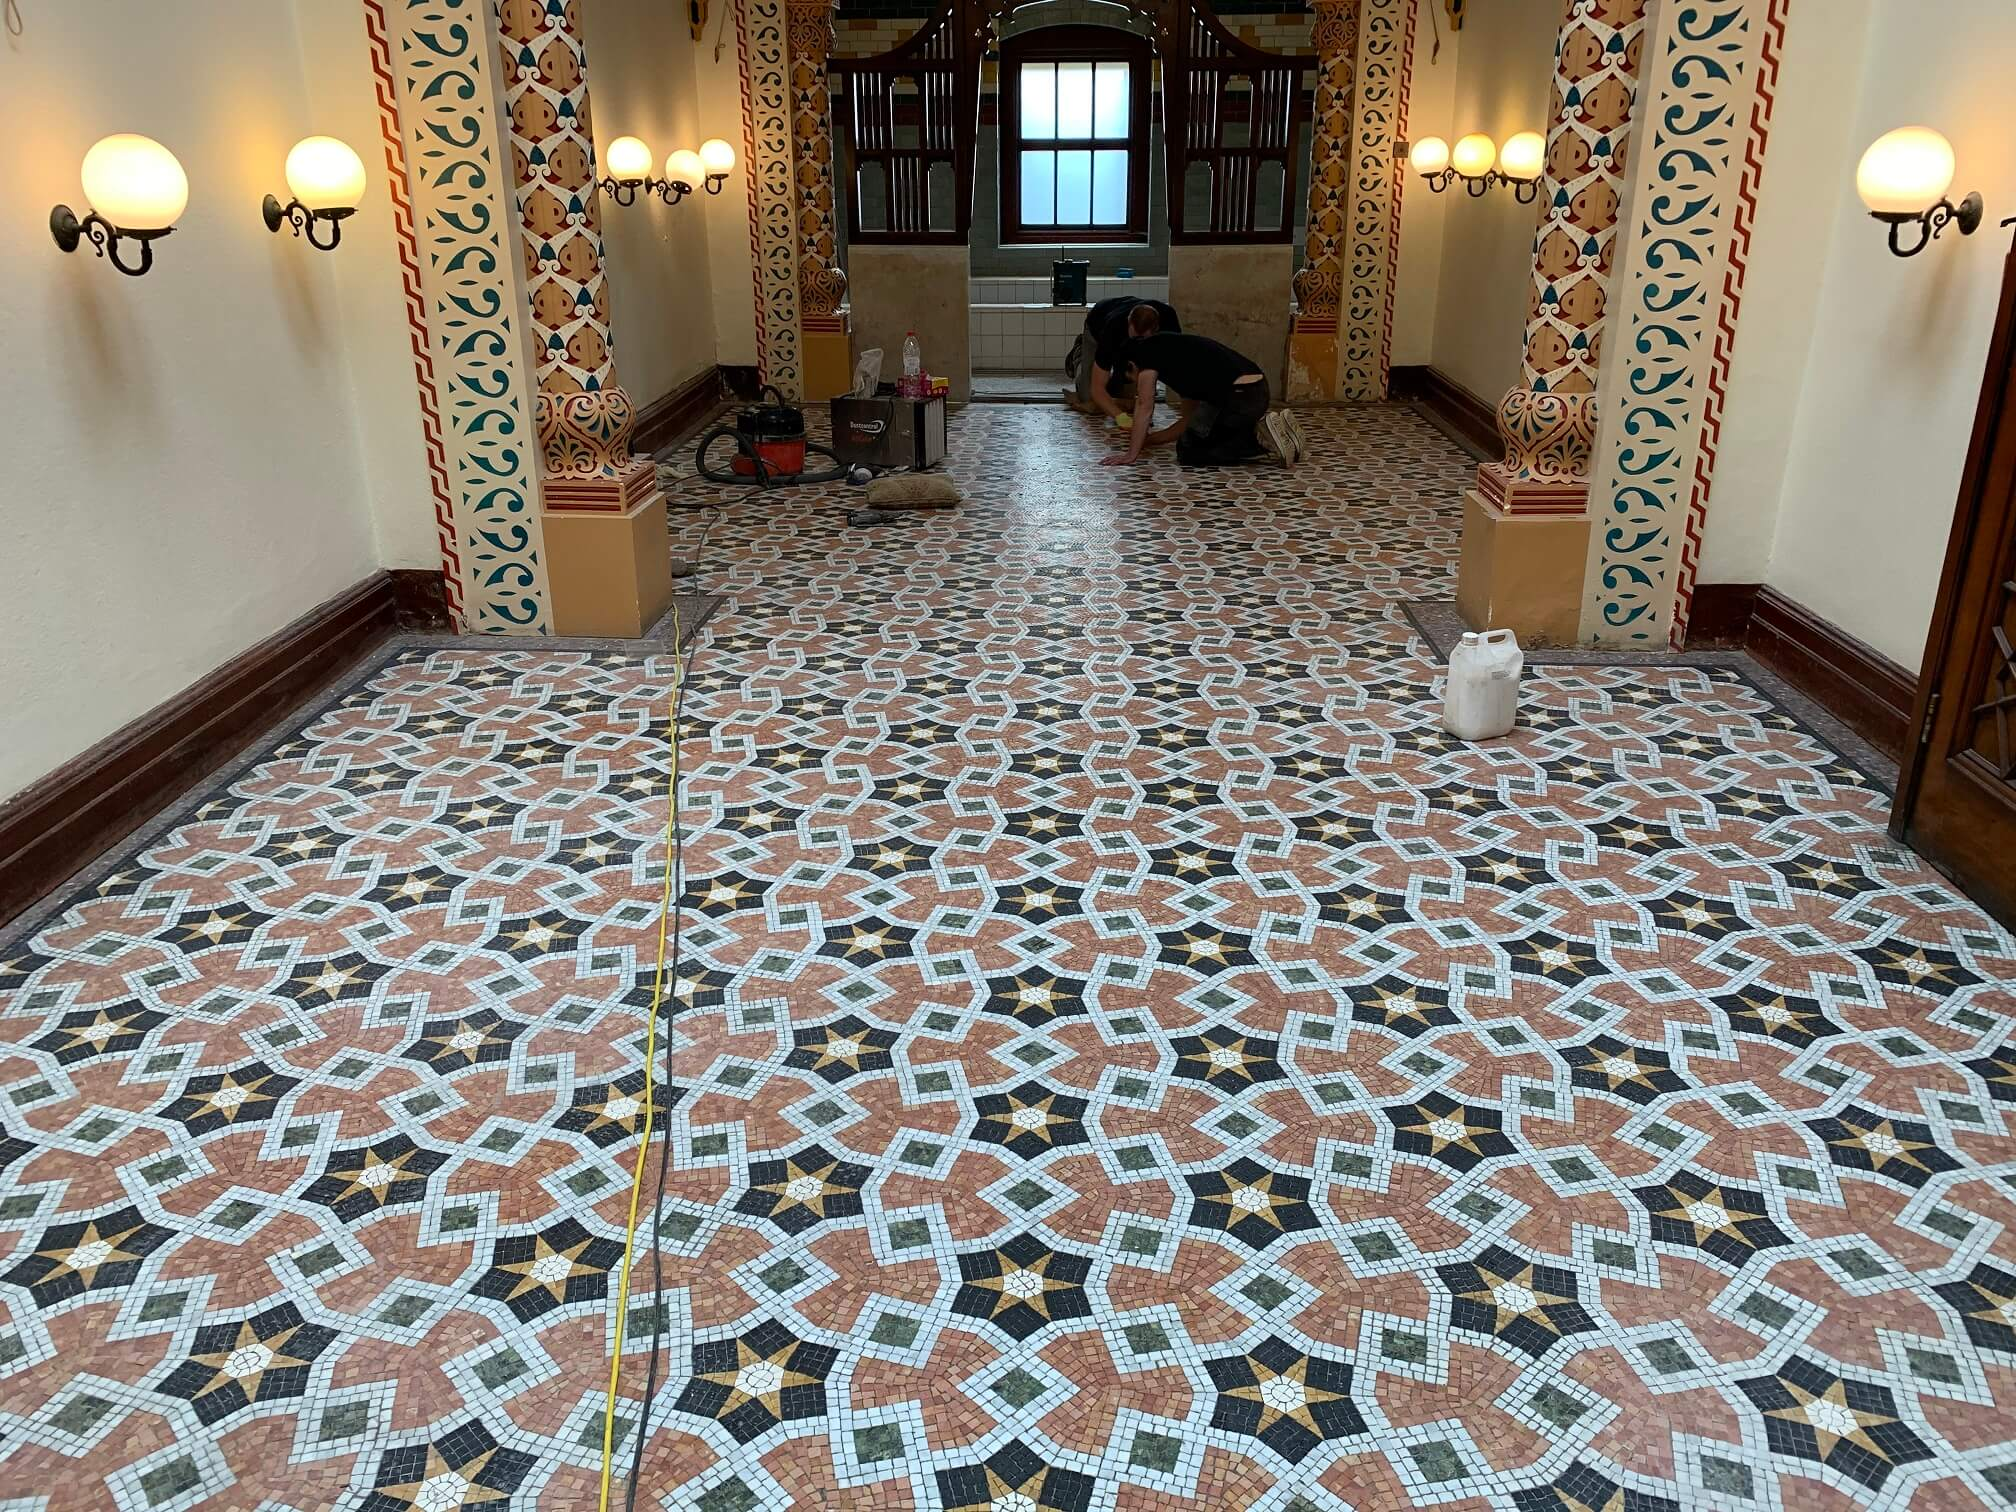 Turkish Baths, Harrogate. Large in-situ marble mosaic project